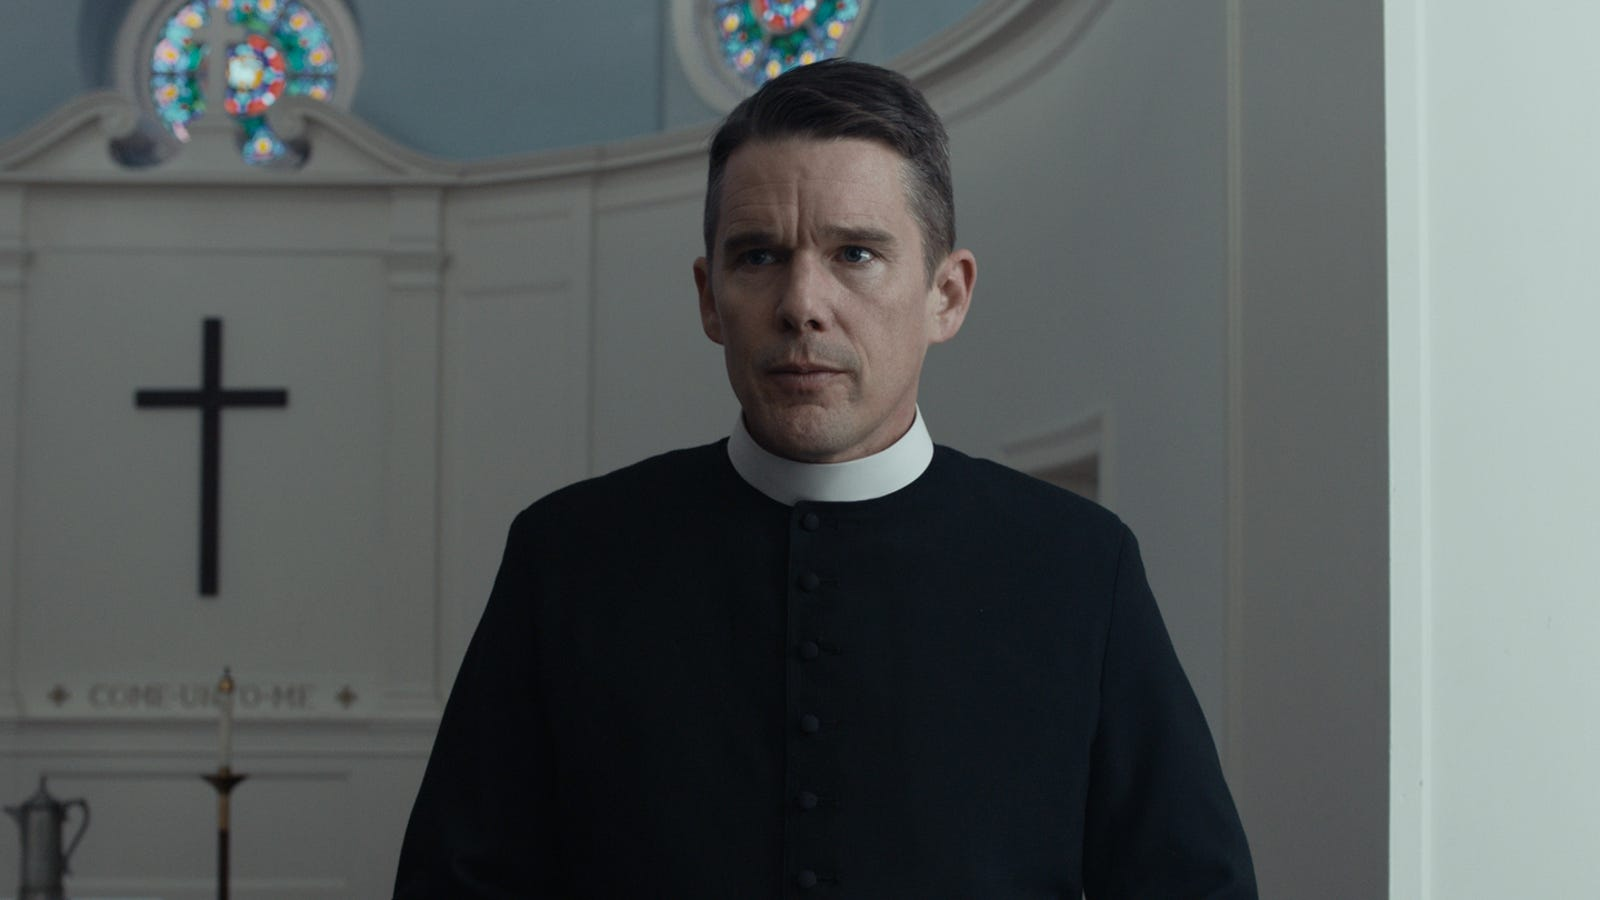 Paul Schrader's transcendent, outrageous First Reformed gives Ethan Hawke one of his best roles